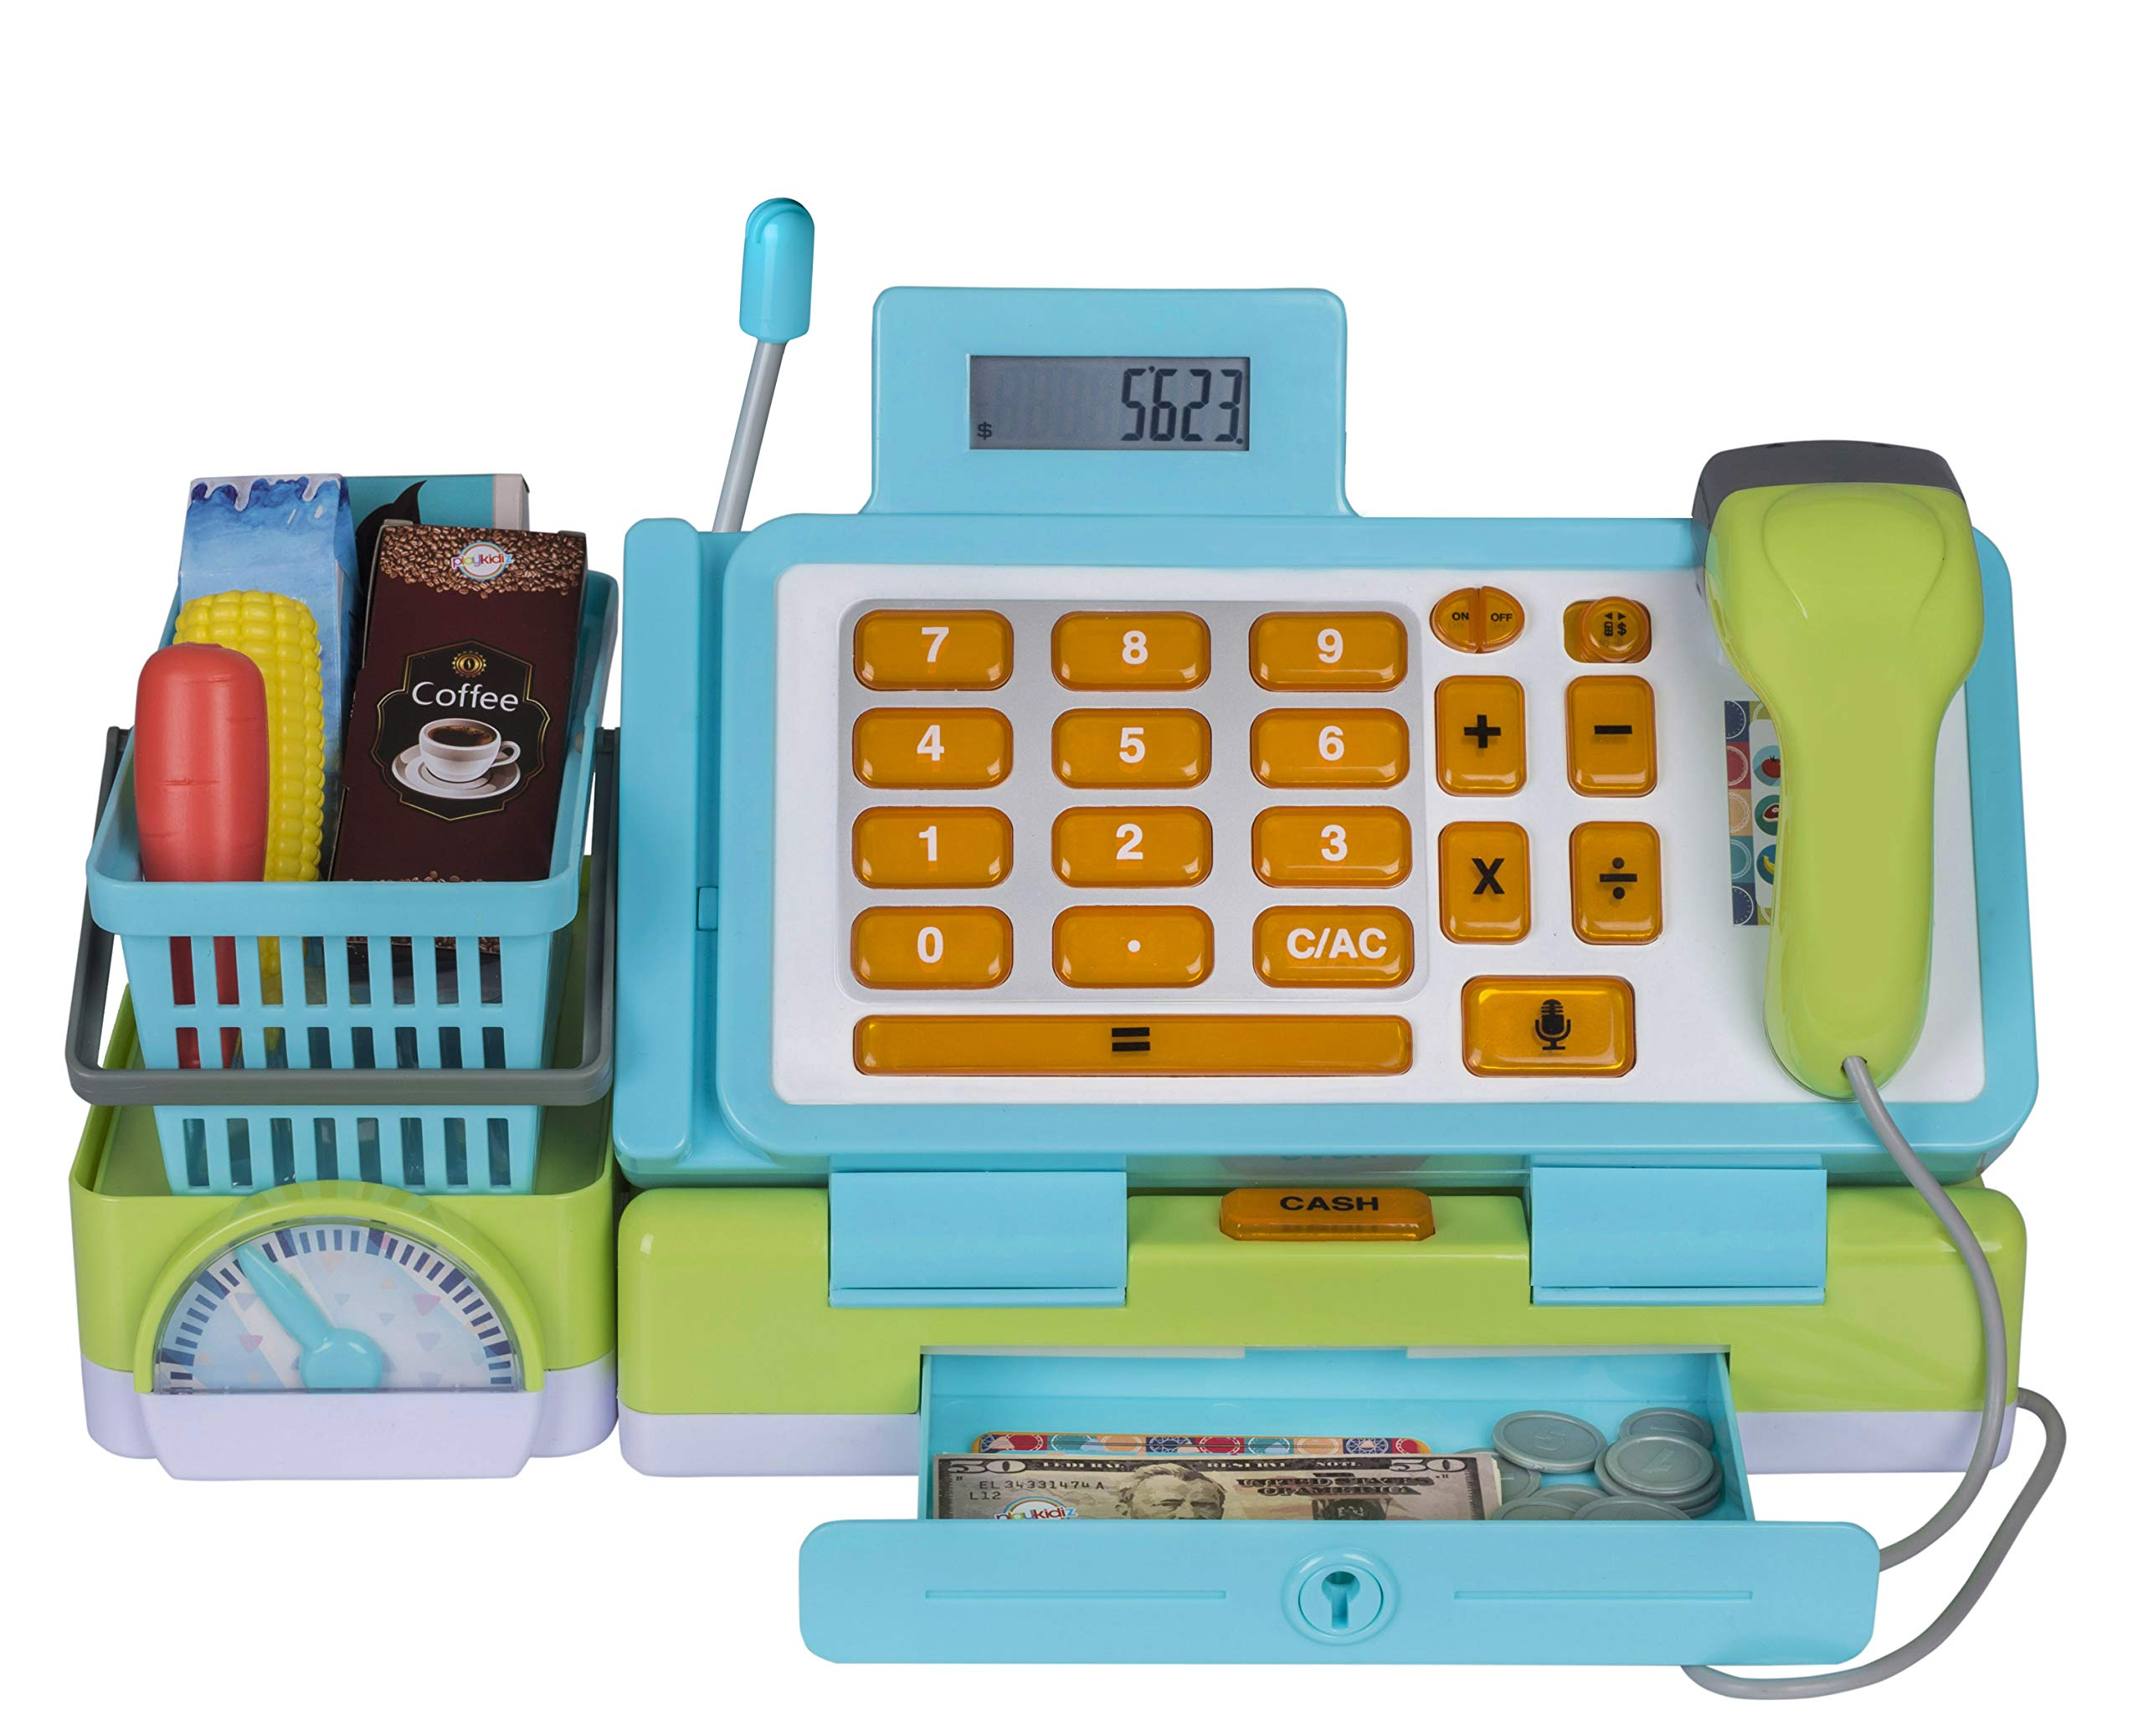 Playkidiz Interactive Toy Cash Register for Kids with Sounds and Early Learning Play, Includes Fake Money, Handheld Scanner, Shopping Basket, Food Boxes, Plastic Fruit and More. by Playkidiz